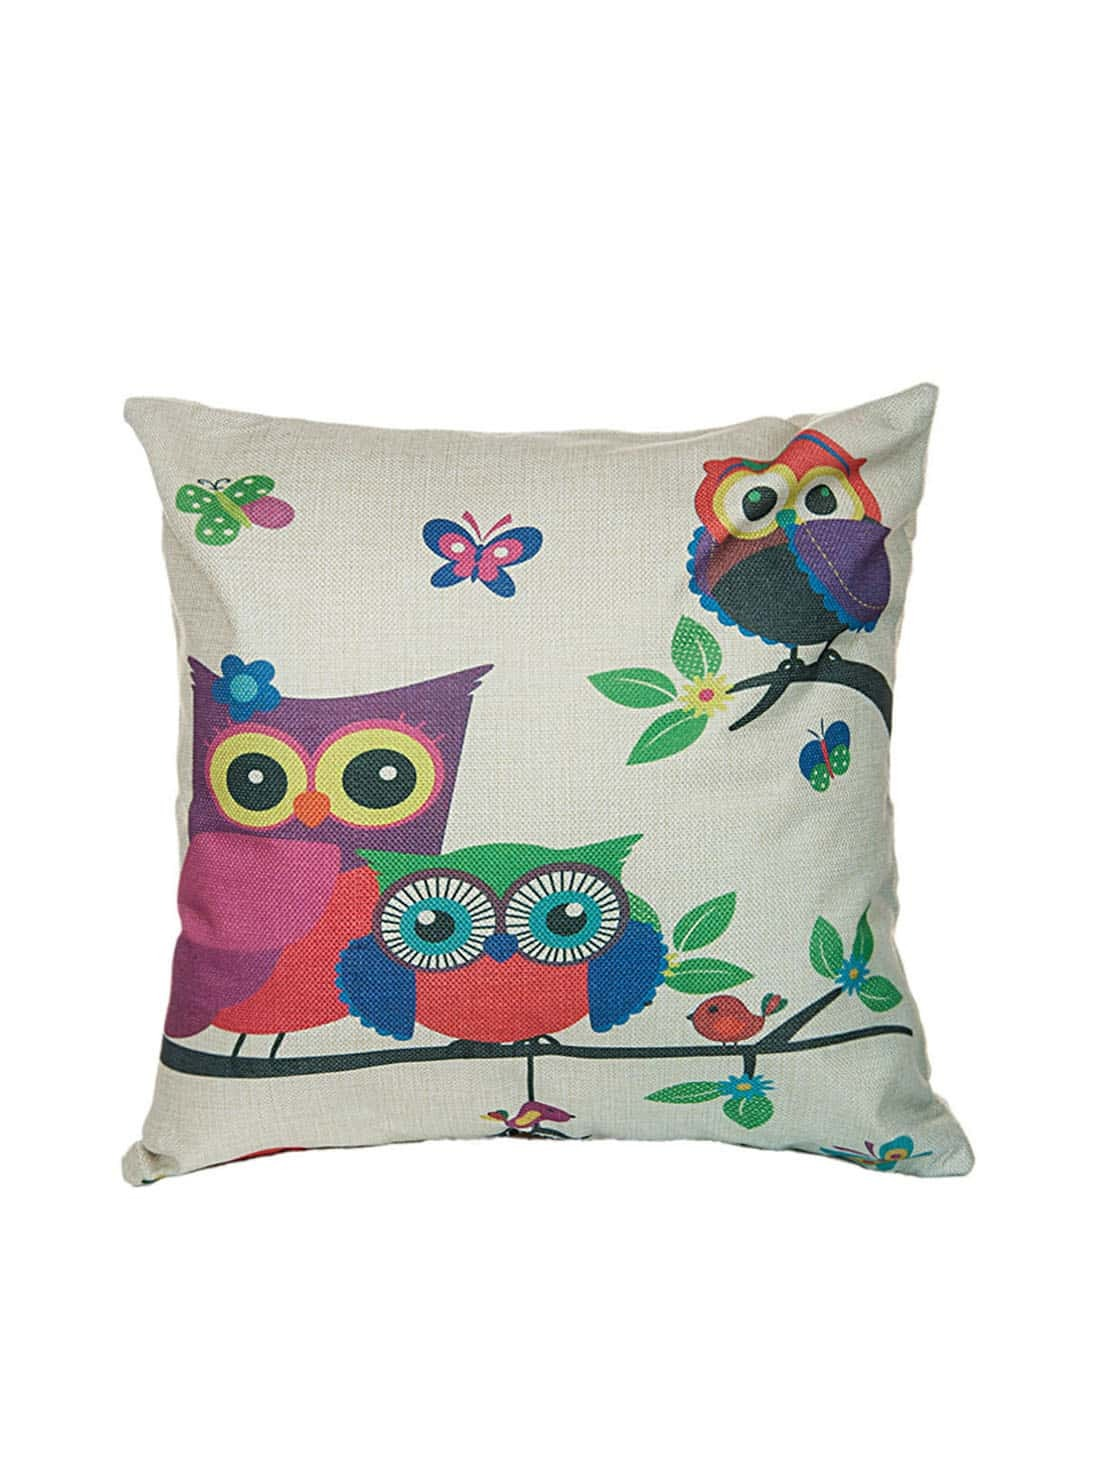 Cartoon Owl Pattern Linen Square Cushion CoverCartoon Owl Pattern Linen Square Cushion Cover<br><br>color: Beige<br>size: None